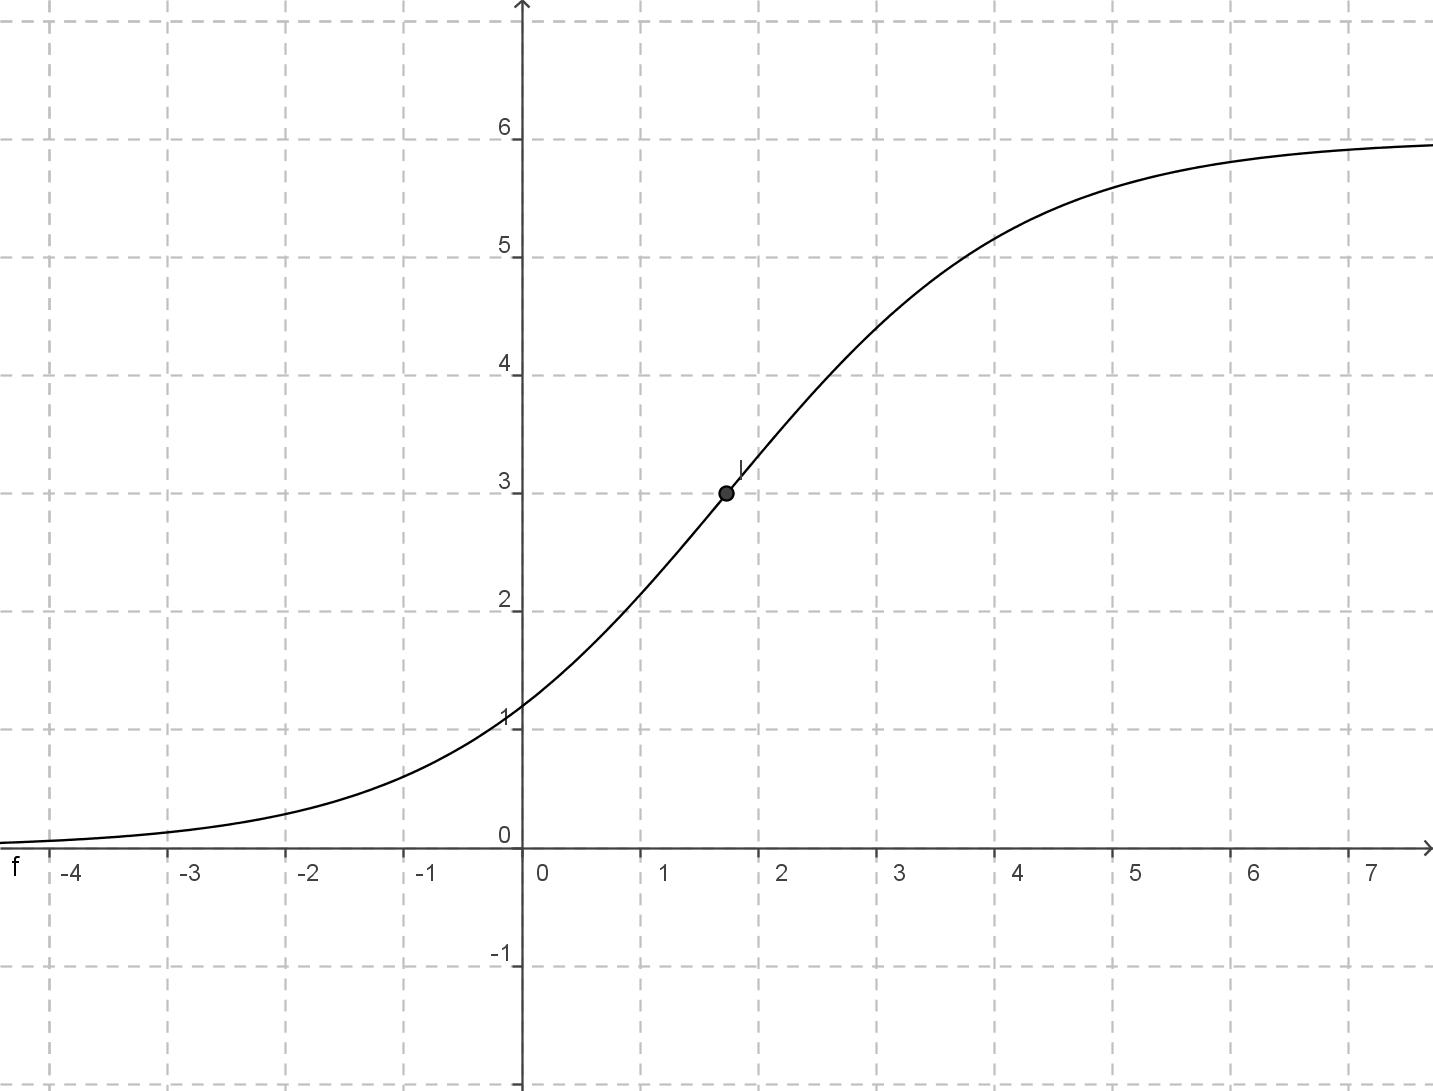 file:logistic function (sigmoid) - wikimedia commons